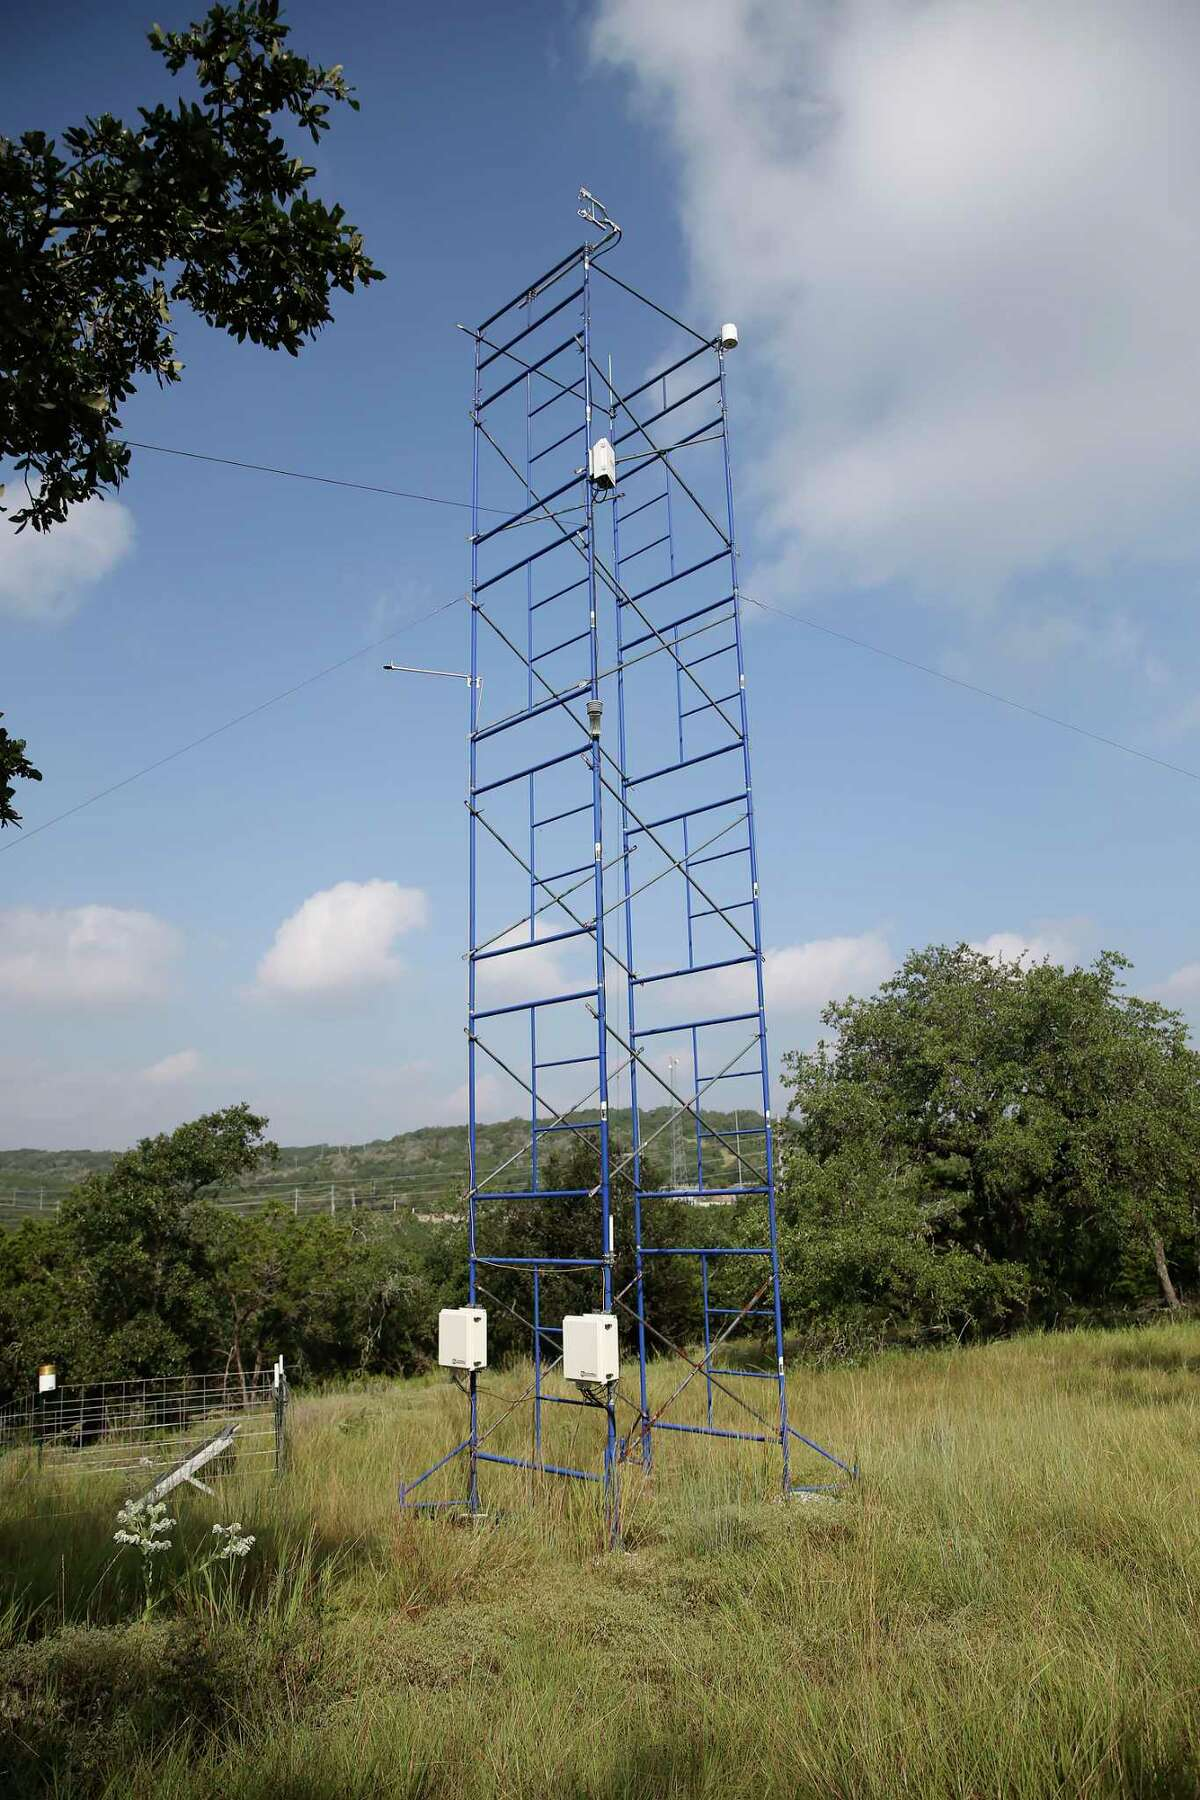 On top of a hill, a tower with instruments measures moister and carbon dioxide in the air at the Edwards Aquifer Conservancy Field Research Park on Wednesday, Sept. 1, 2021.